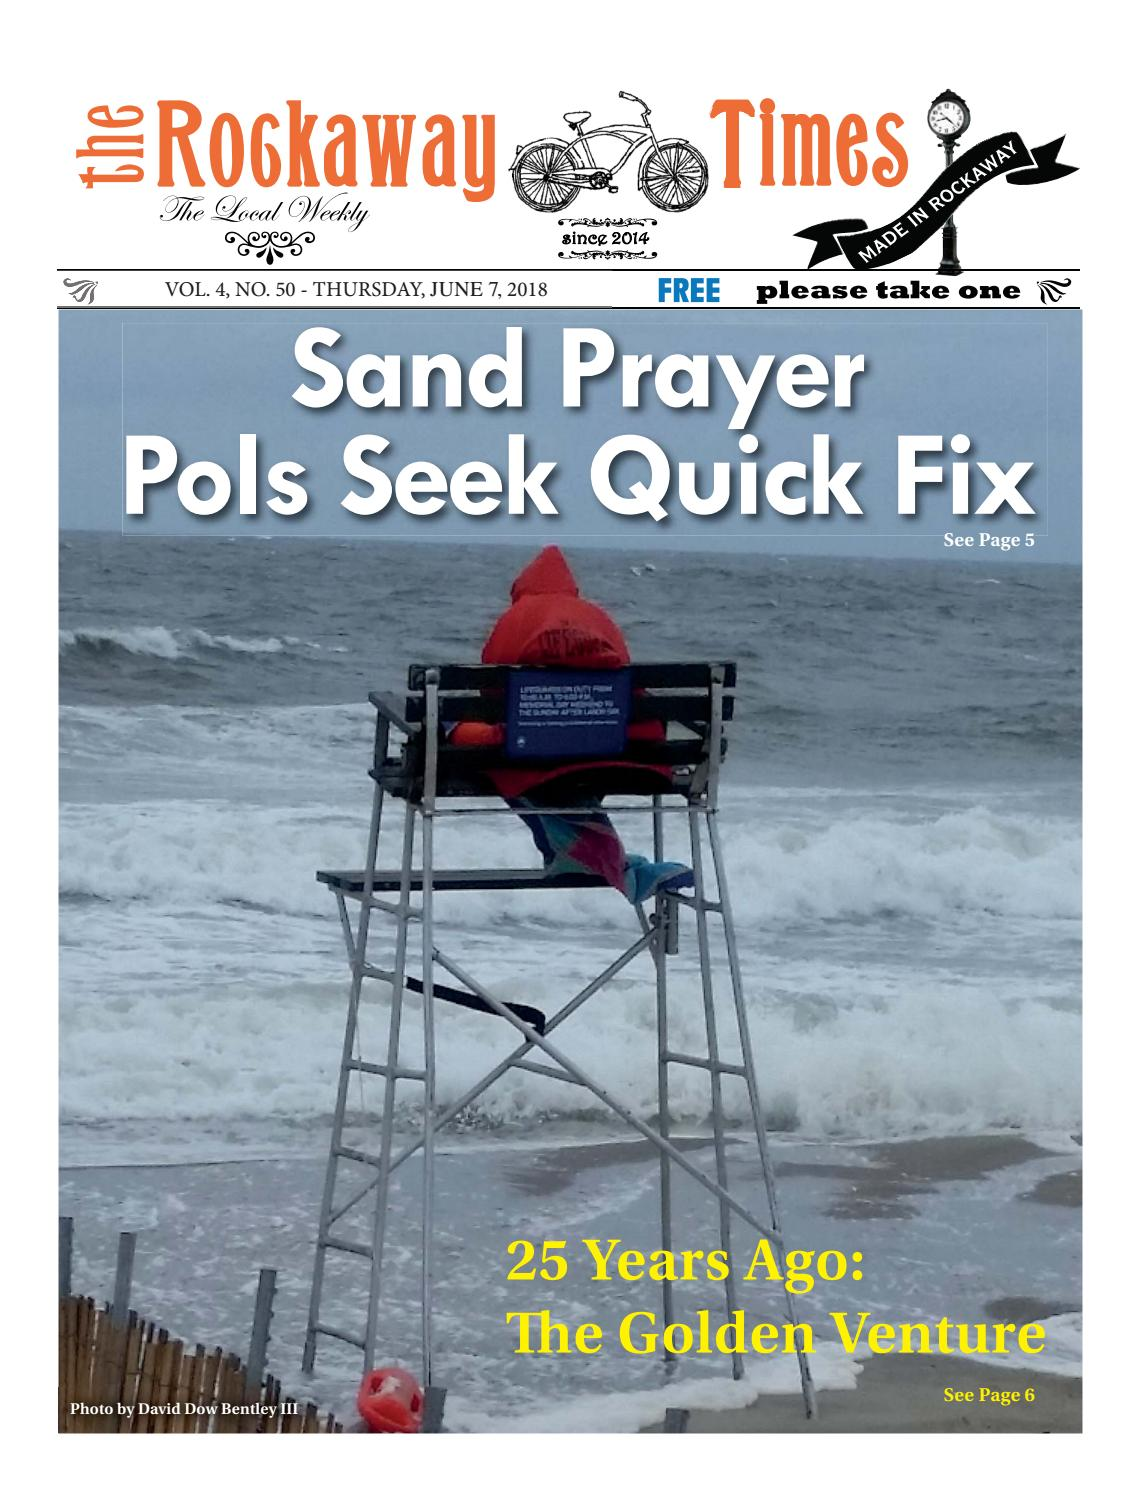 The Rockaway Times | THURSDAY, JUNE 7, 2018 by Mike Kurov - issuu